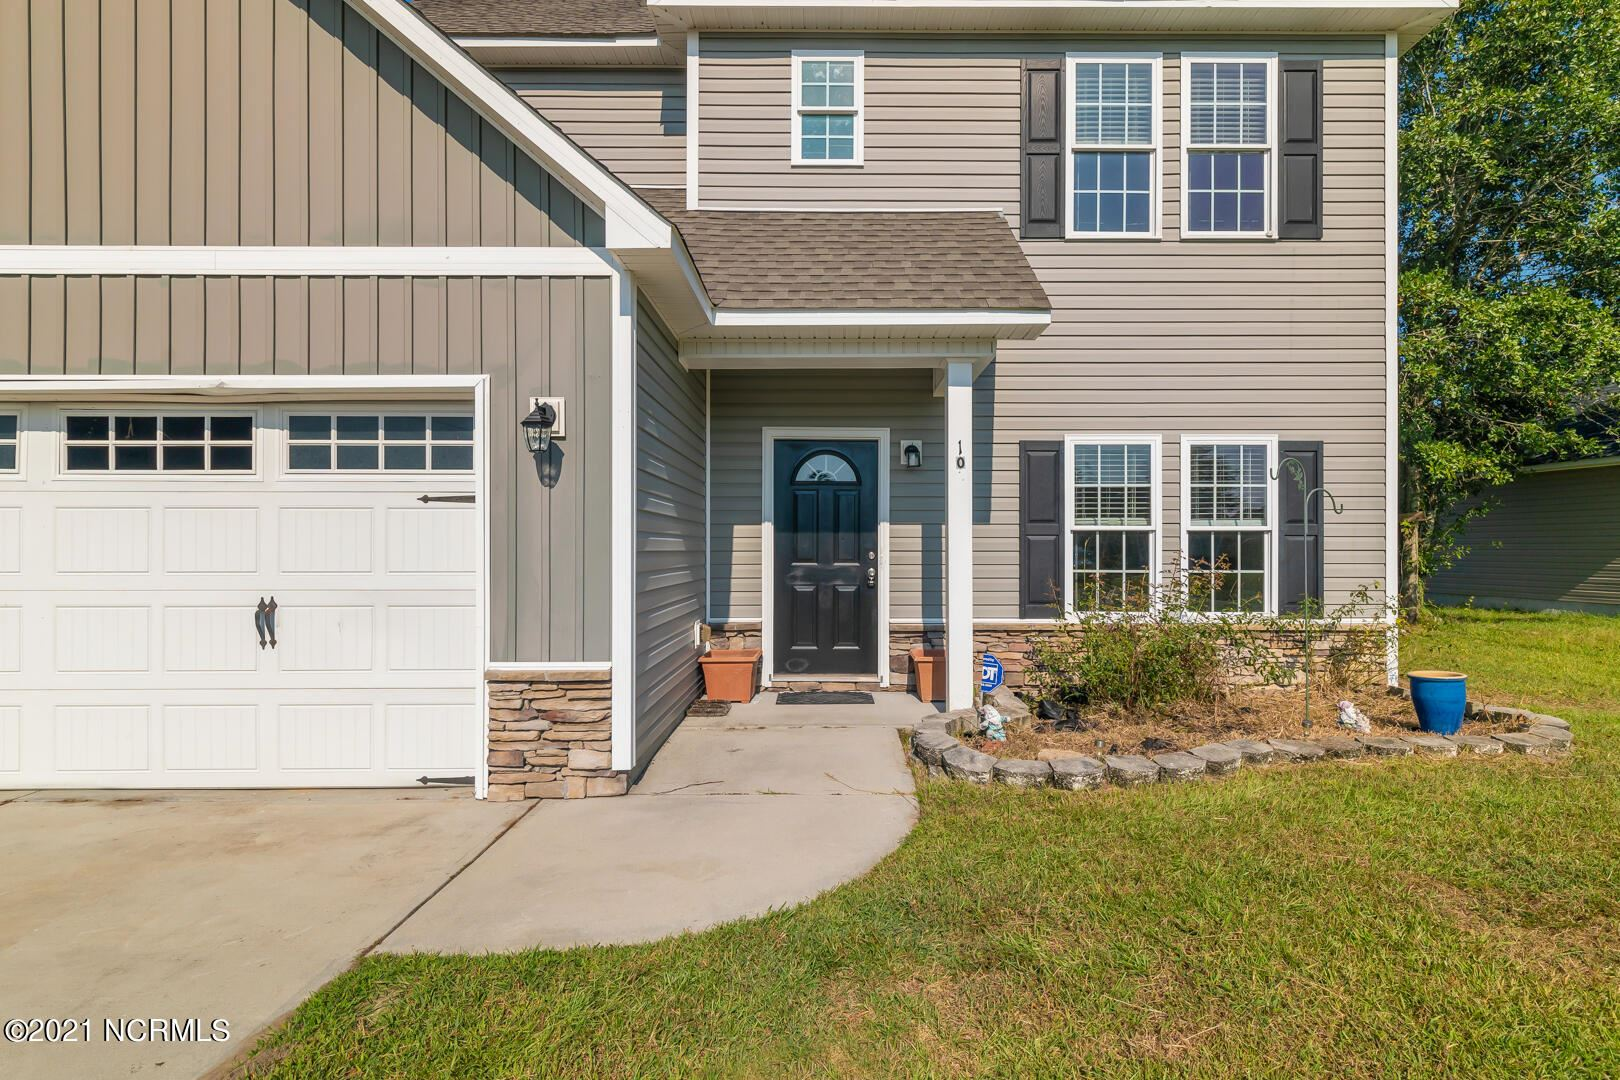 Photo of 105 Easton Drive, Richlands, NC 28574 (MLS # 100291715)